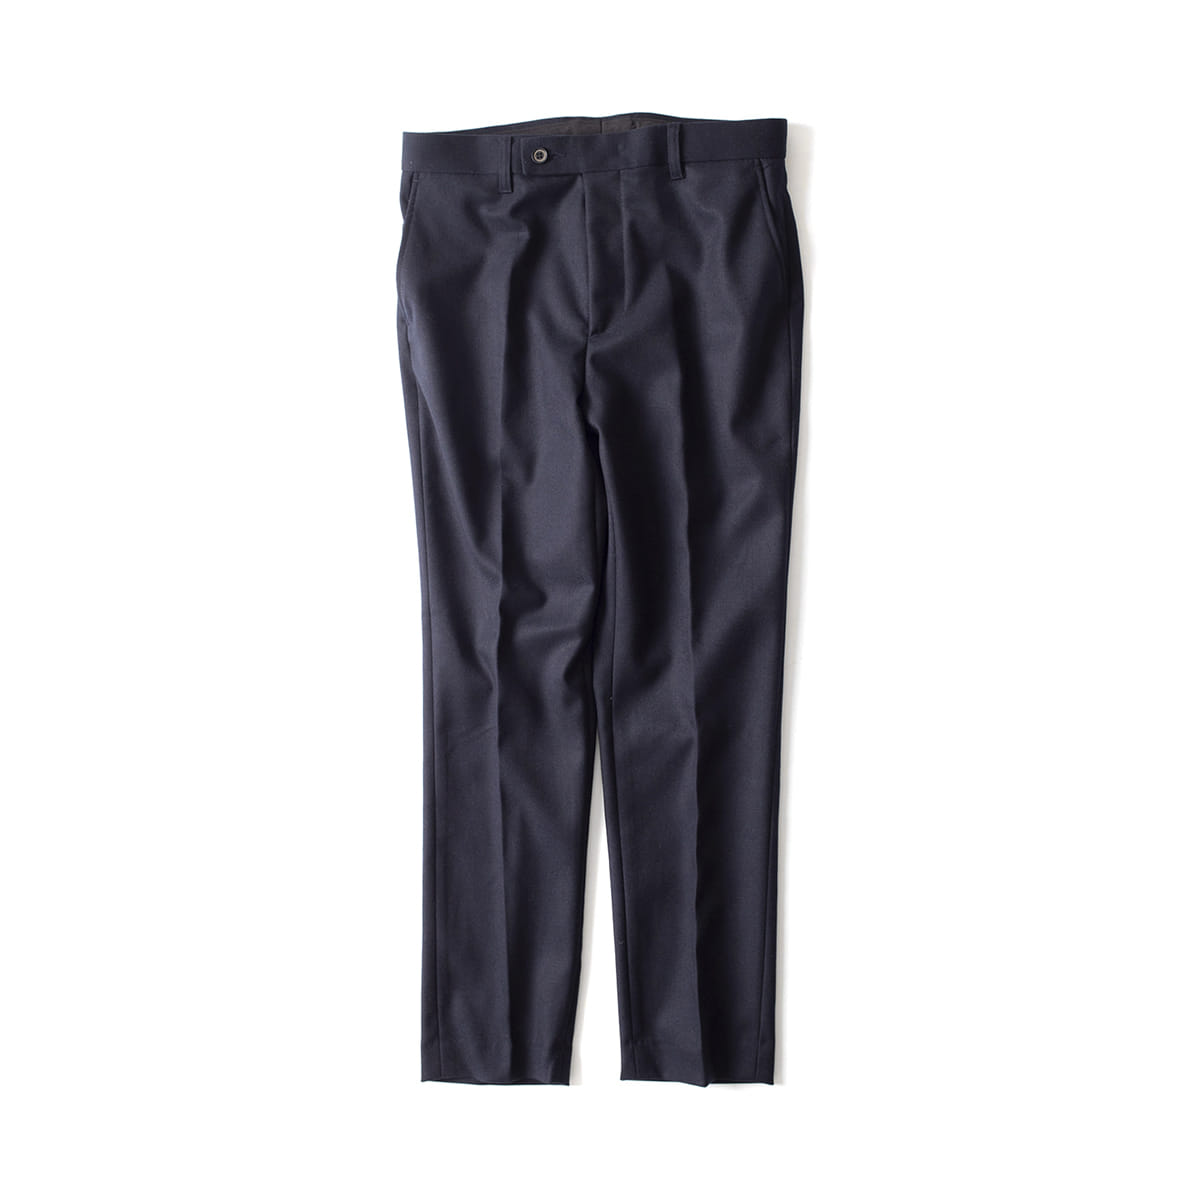 [BIRTHDAYSUIT] DAILY SUIT PANTS 'NAVY'